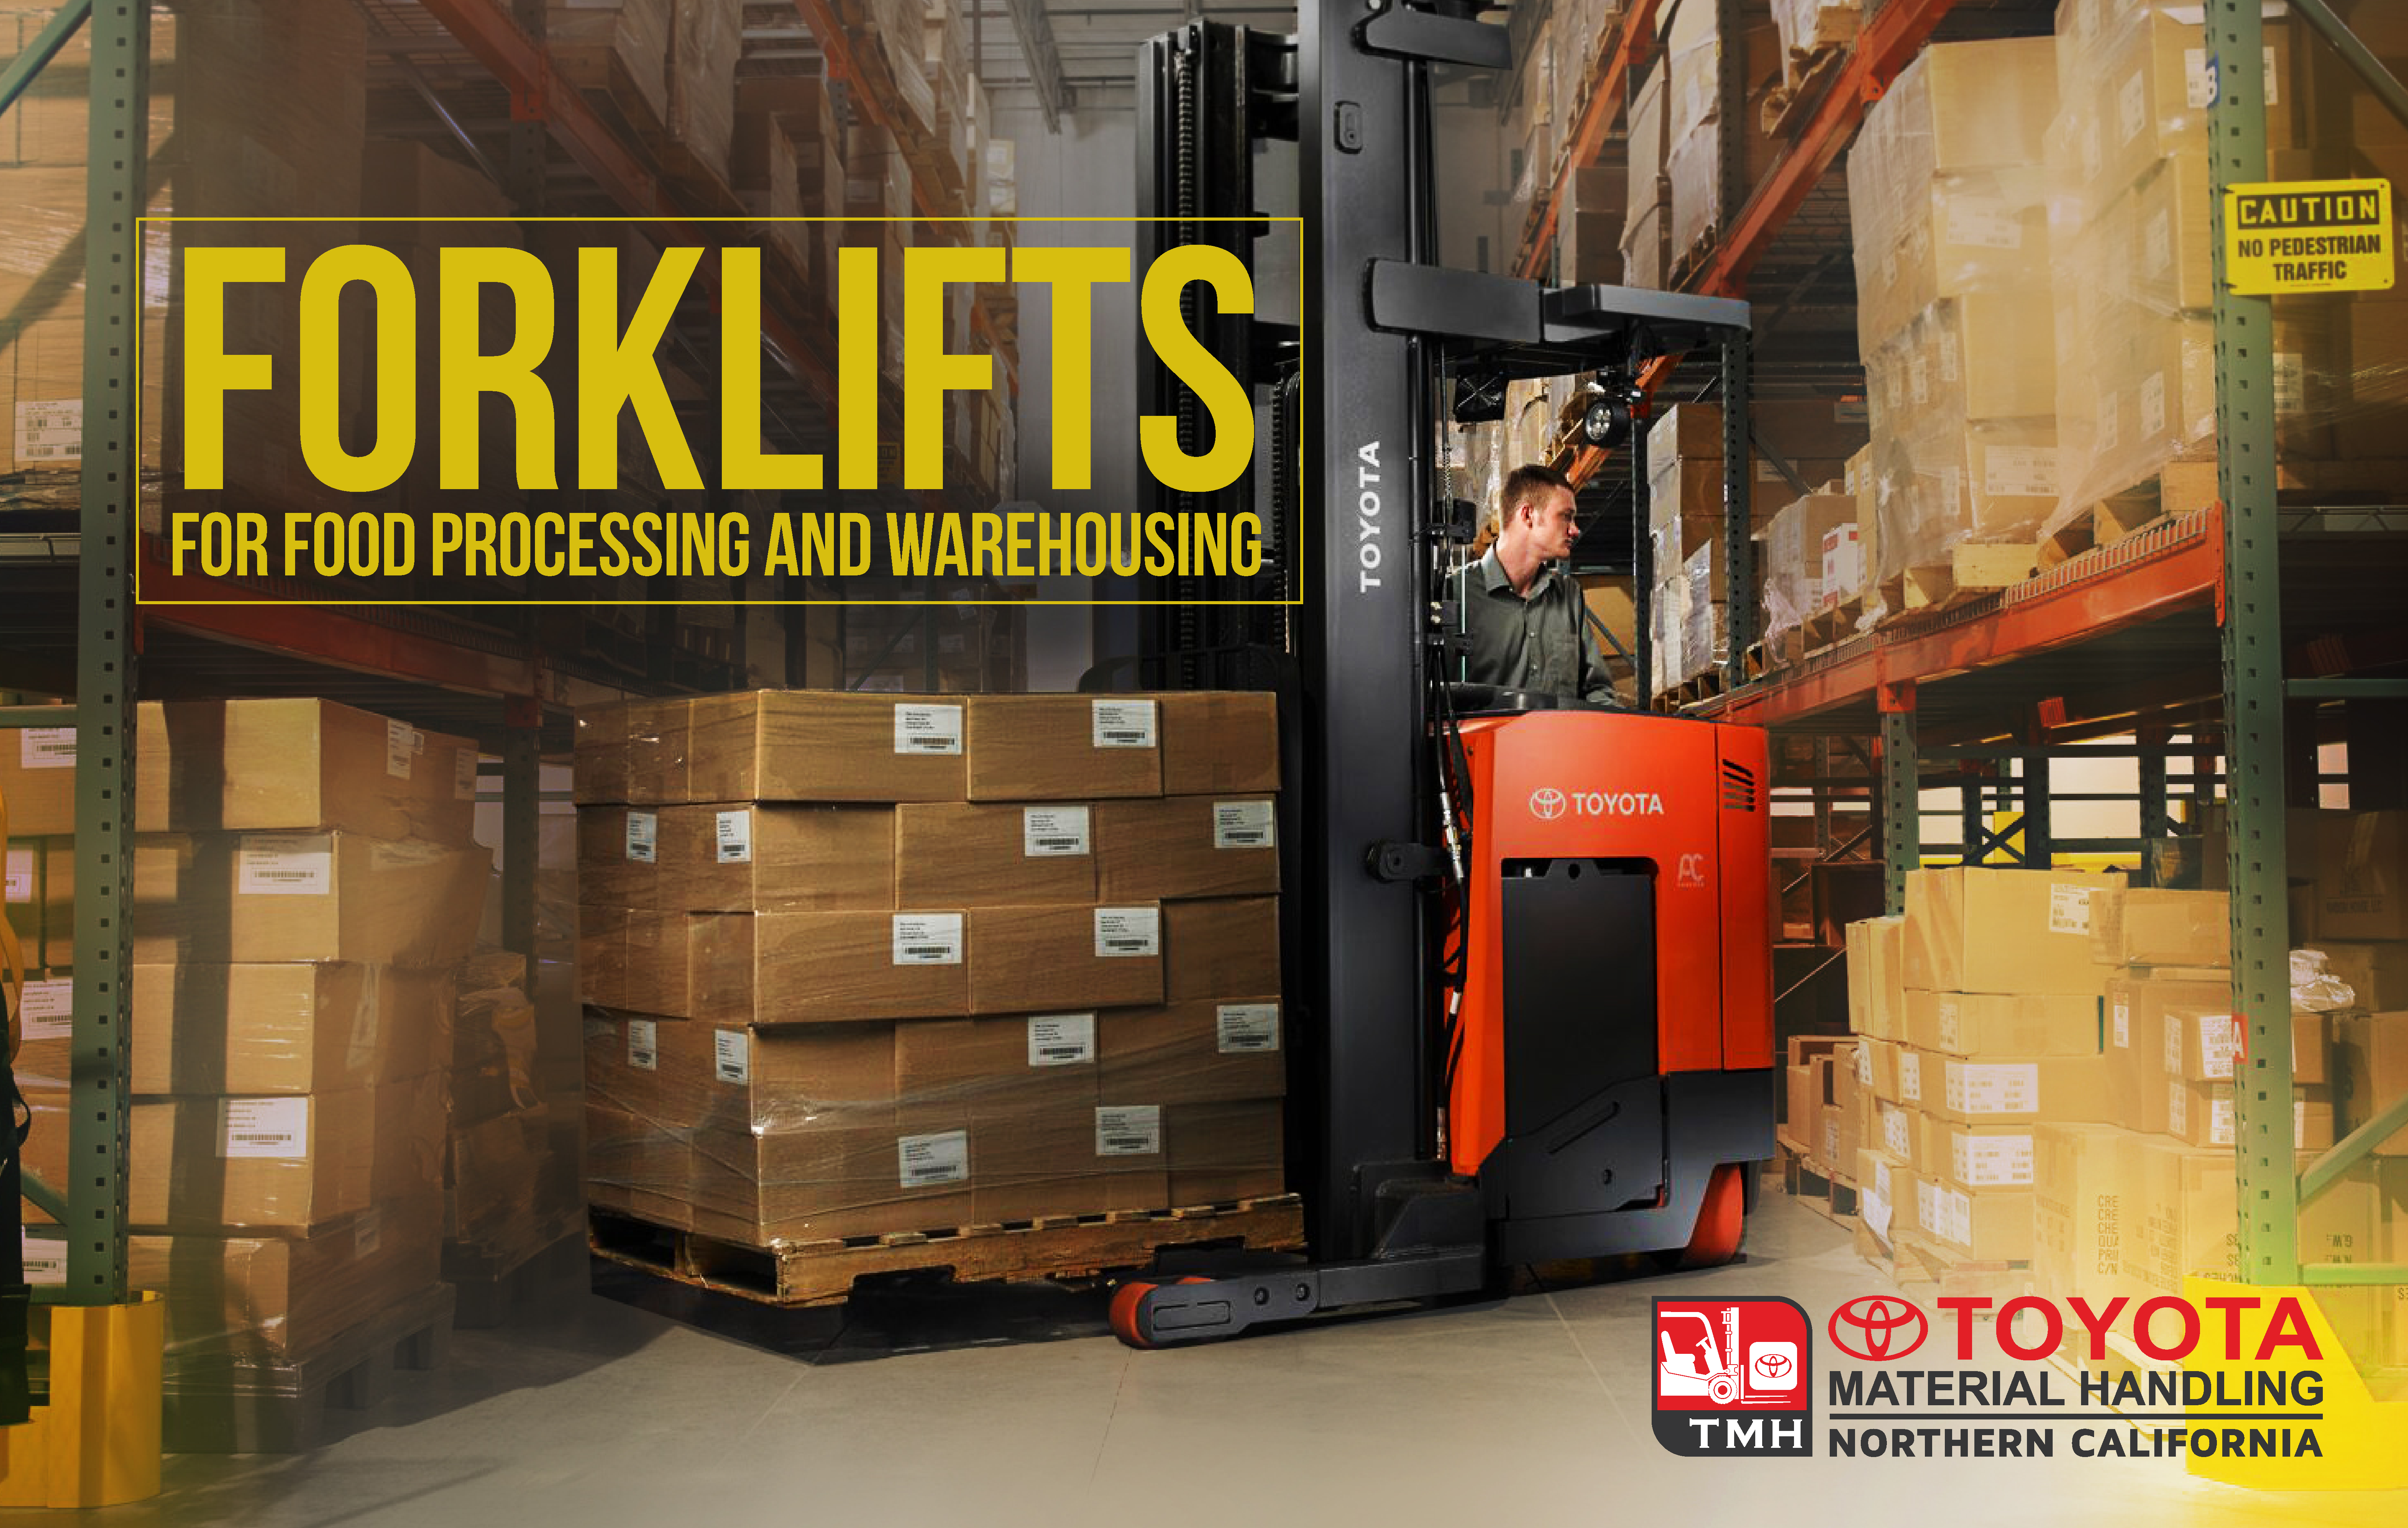 forklifts for food processing and warehousing